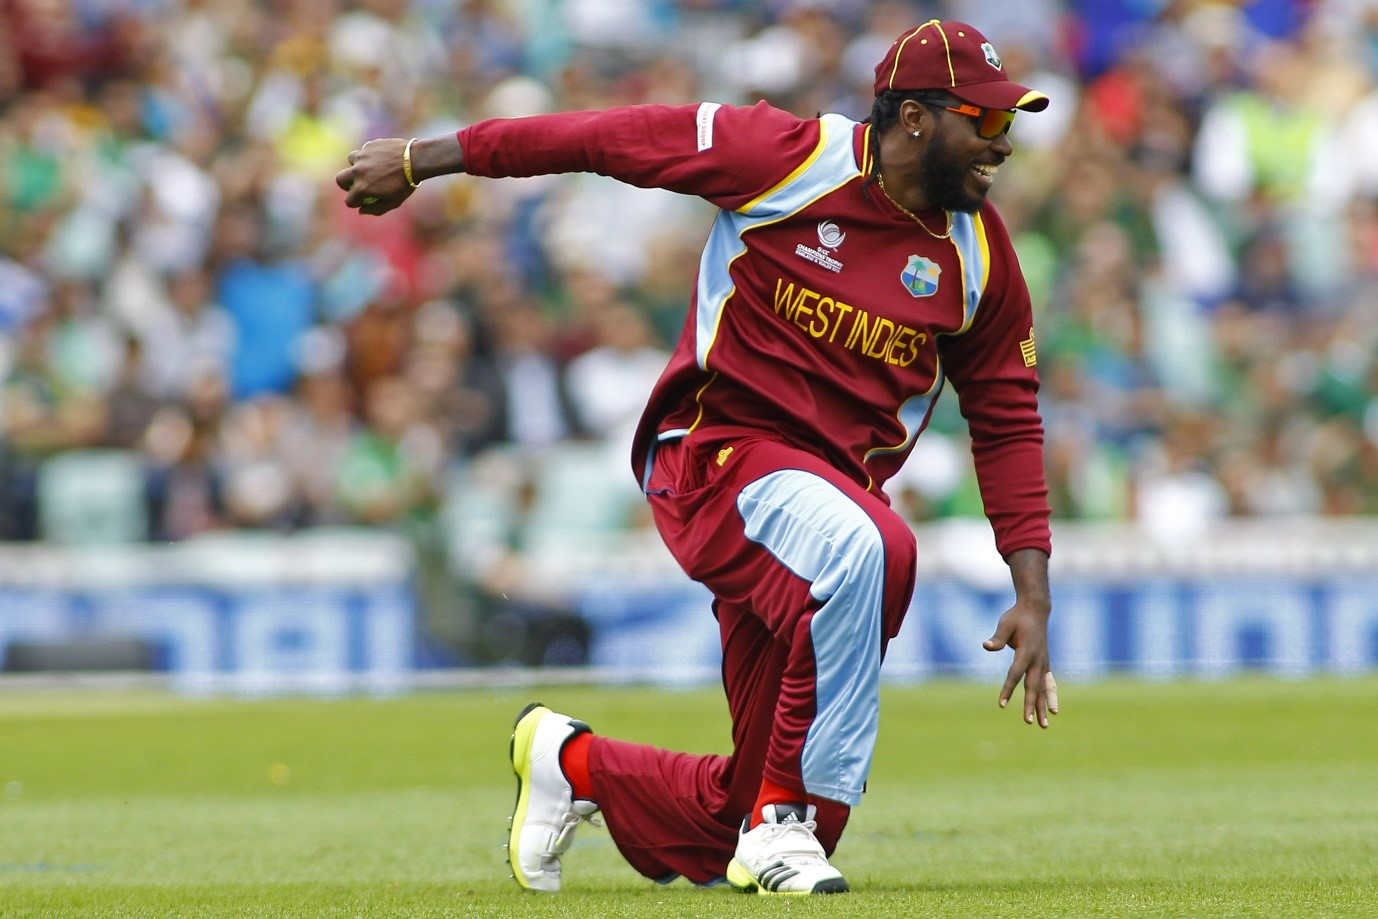 The Sports Archives Blog - The Sports Archives - The Greatest Ever Cricket World Cup Stars